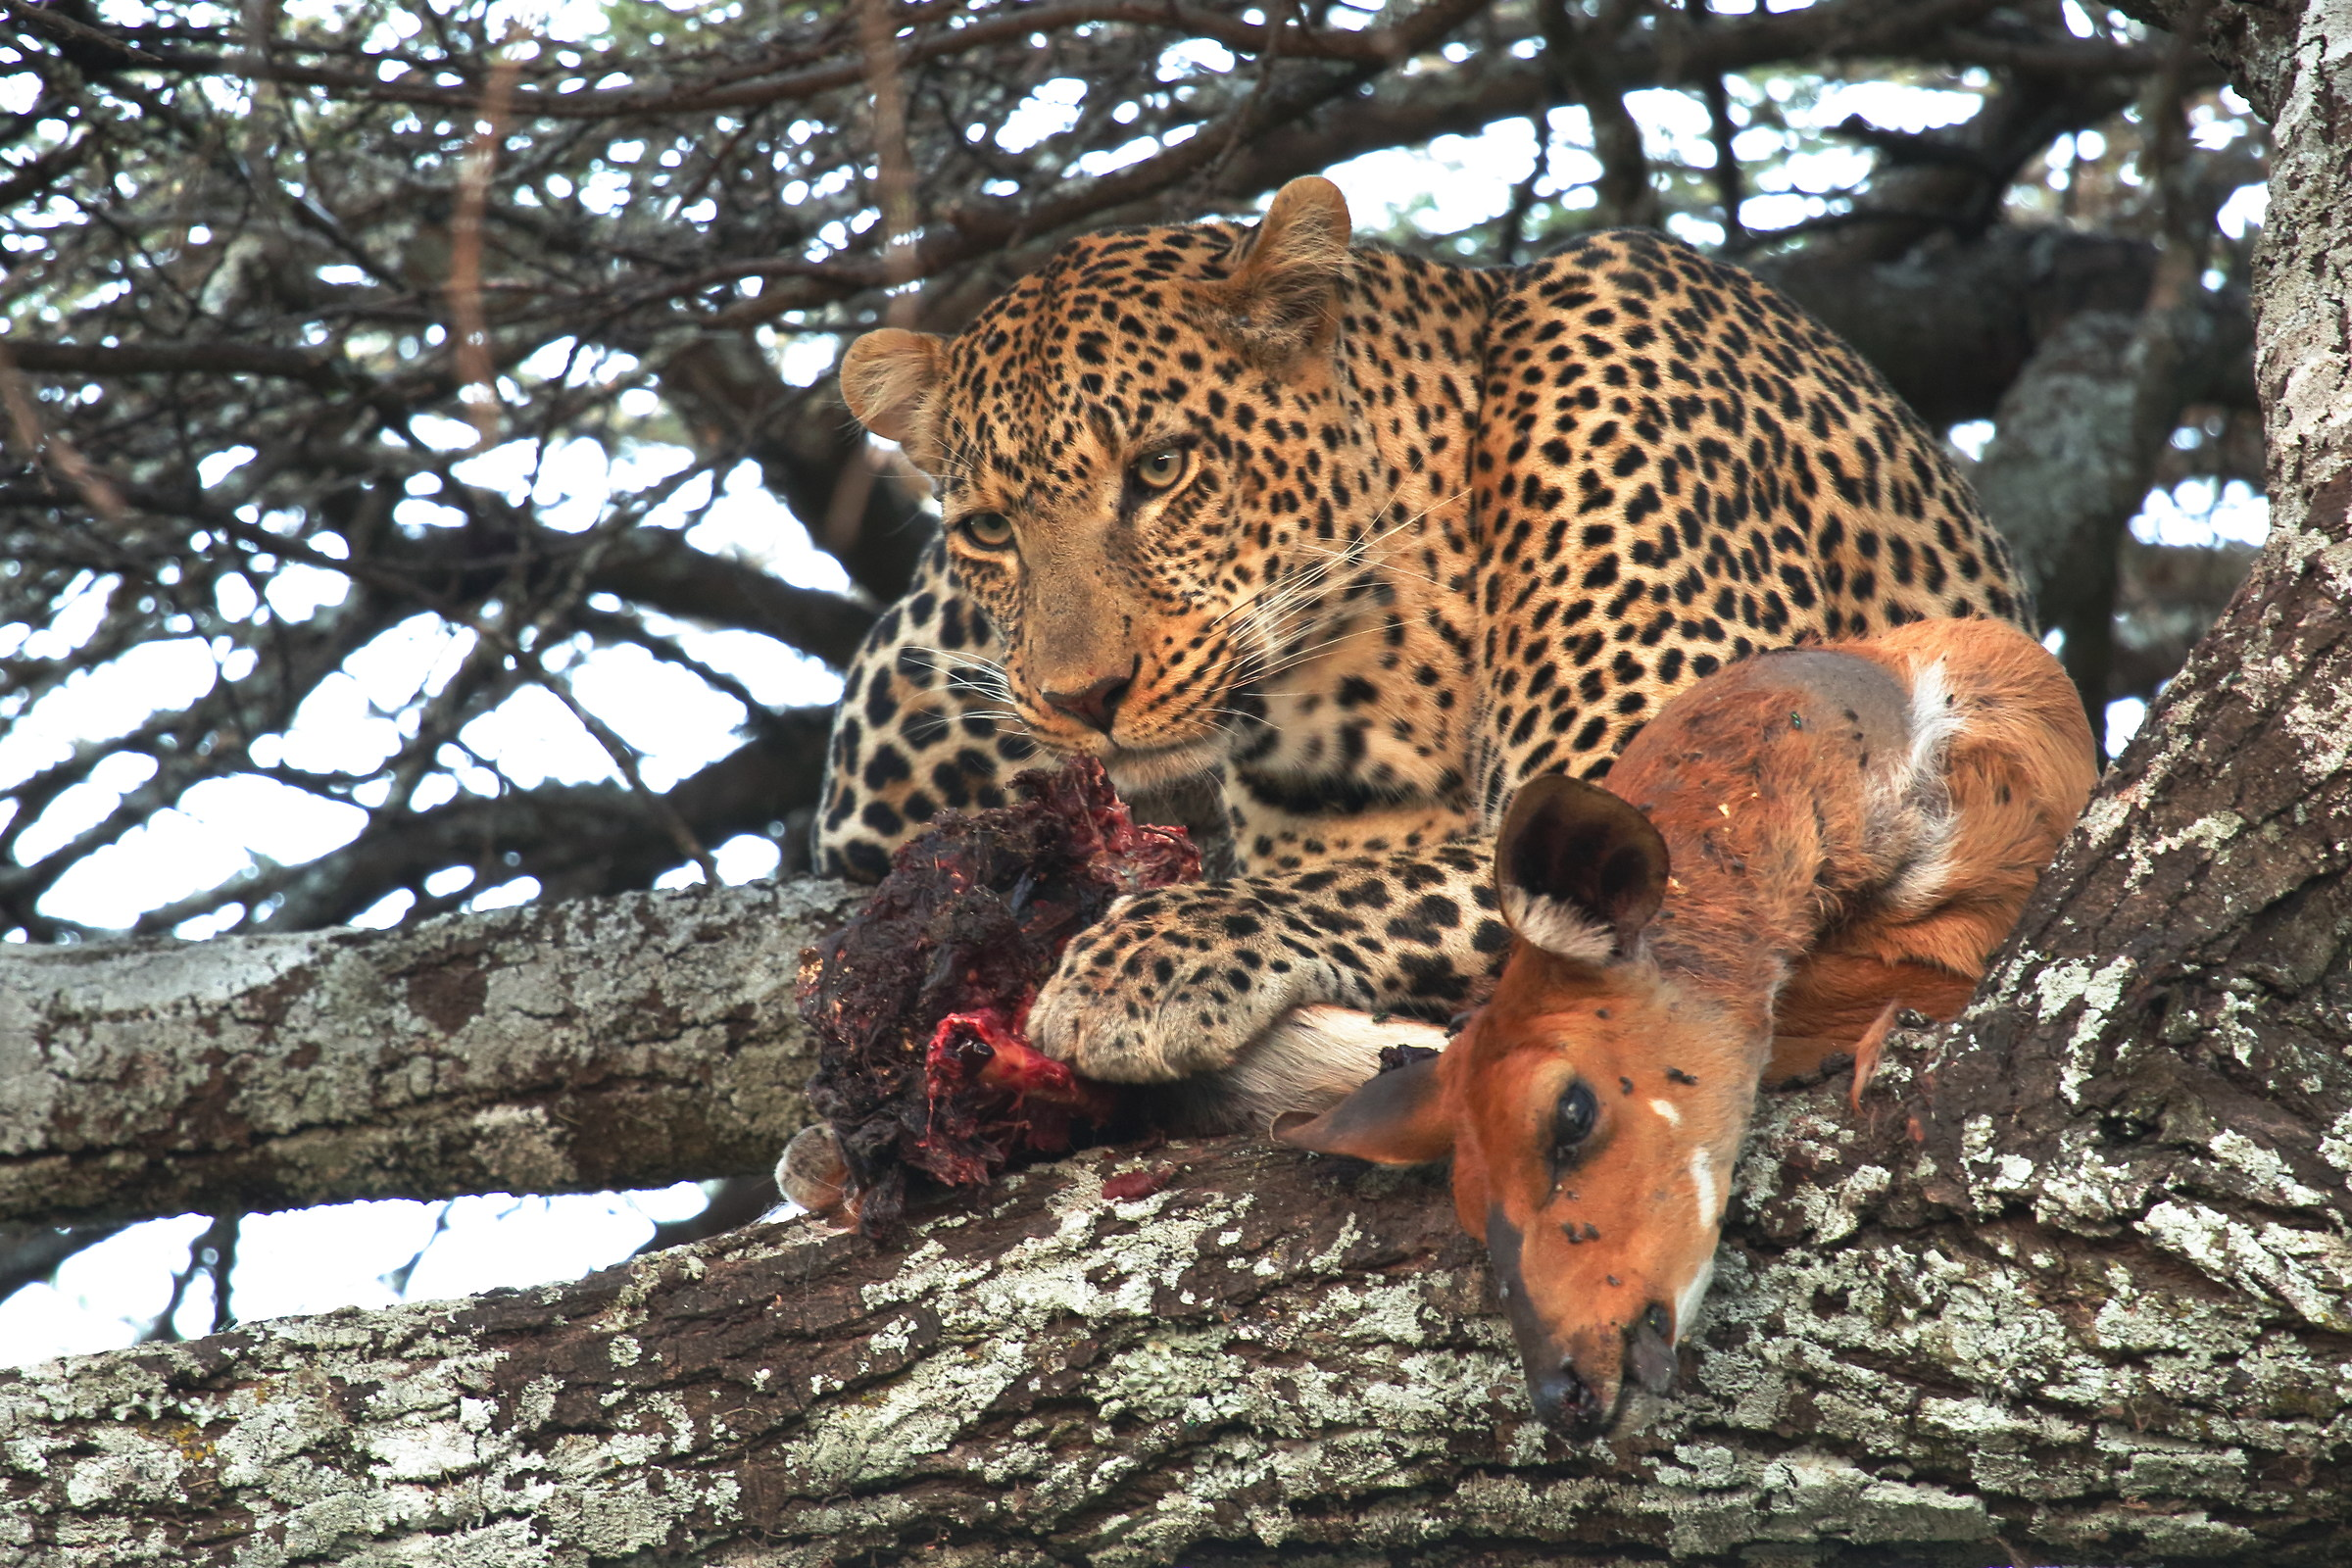 The snack of the Leopard...